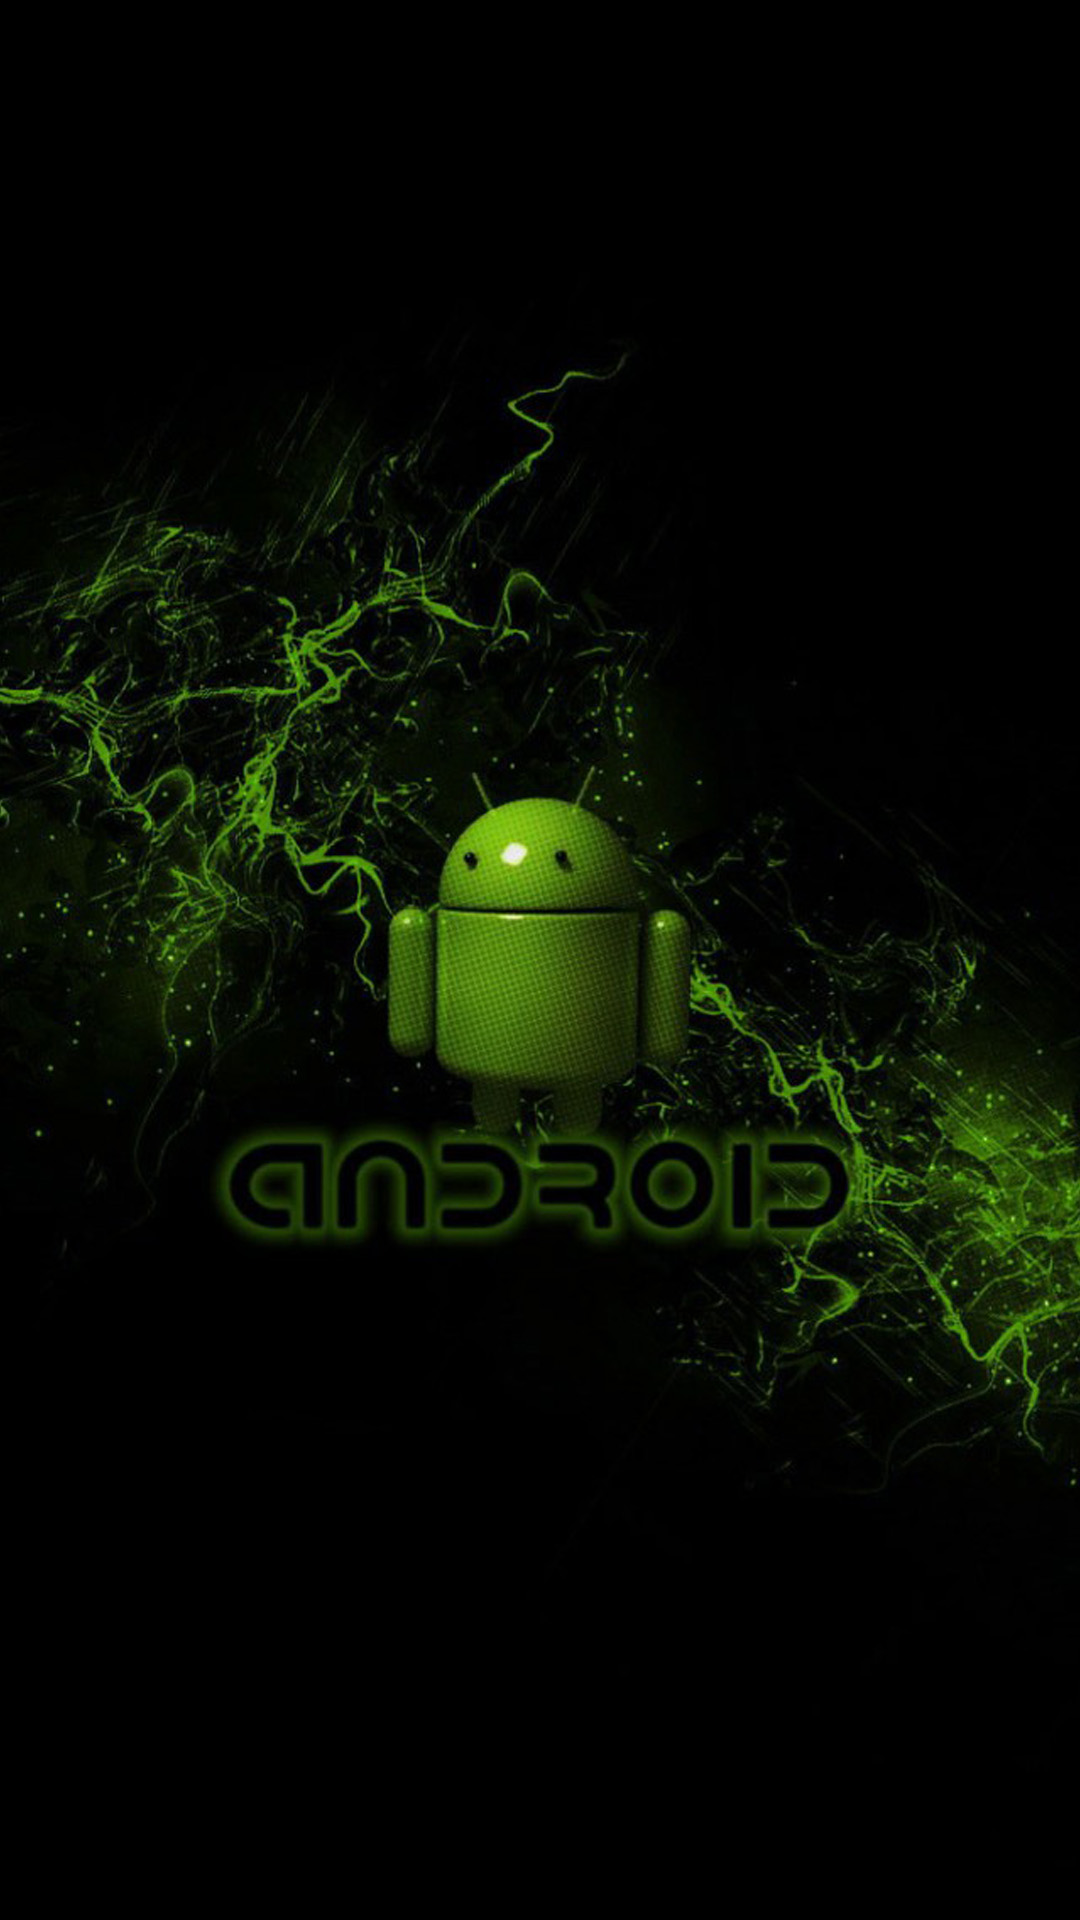 Android Green Smoke Smartphone Wallpapers HD ⋆ GetPhotos